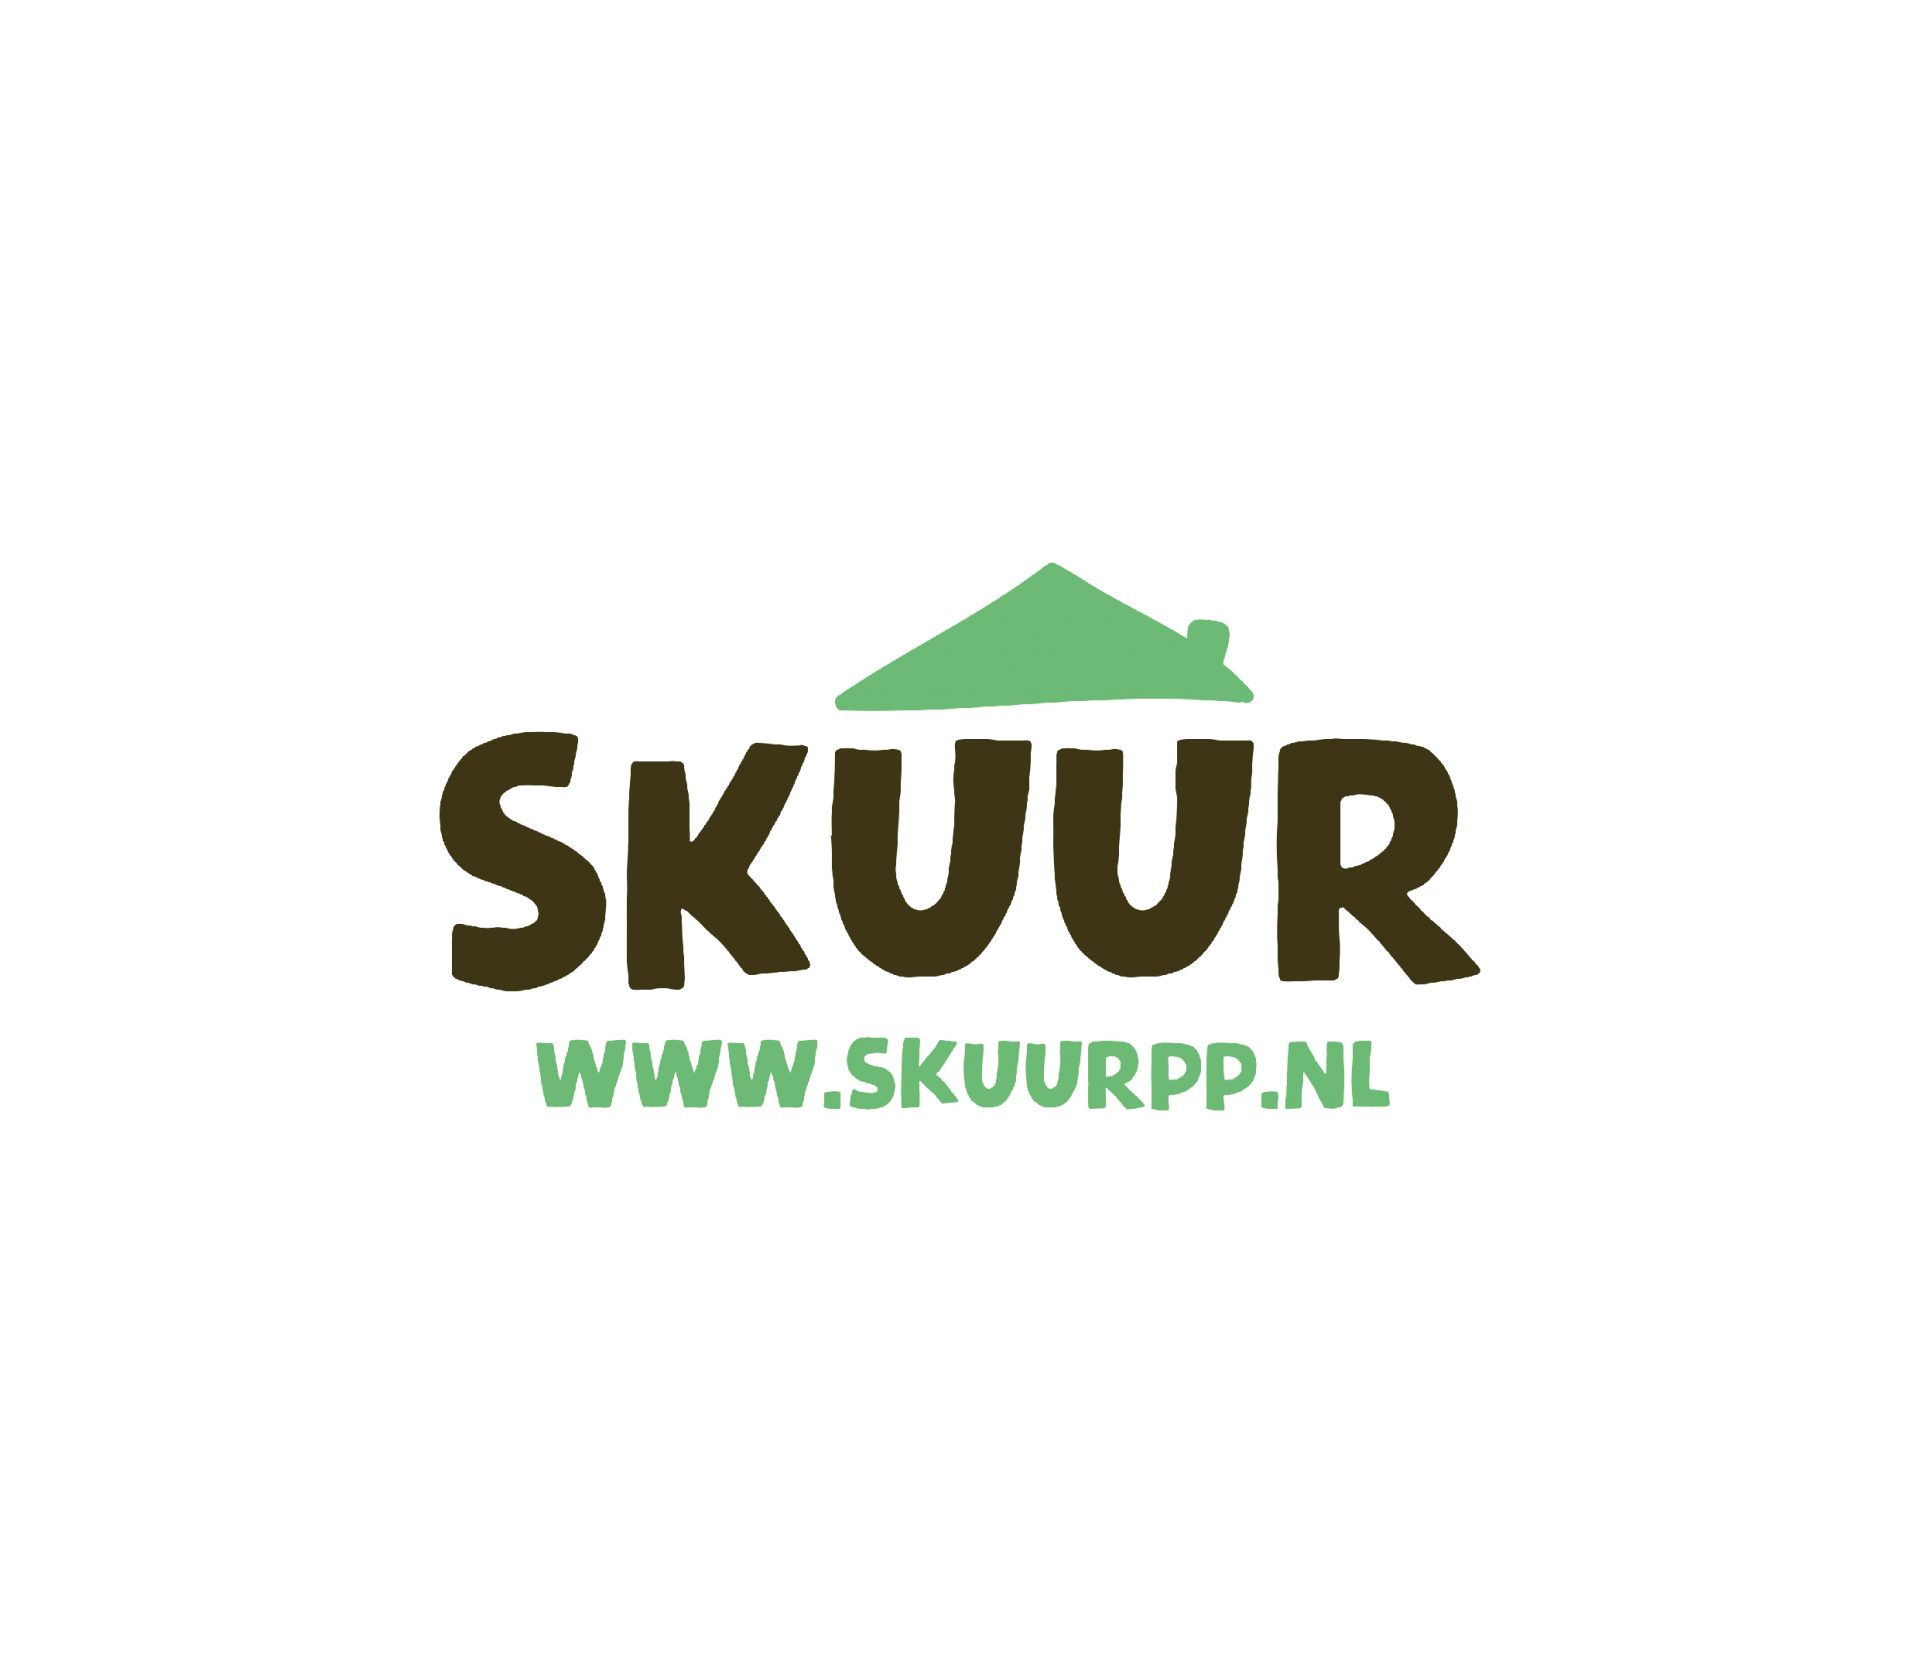 Skuur Personal Products